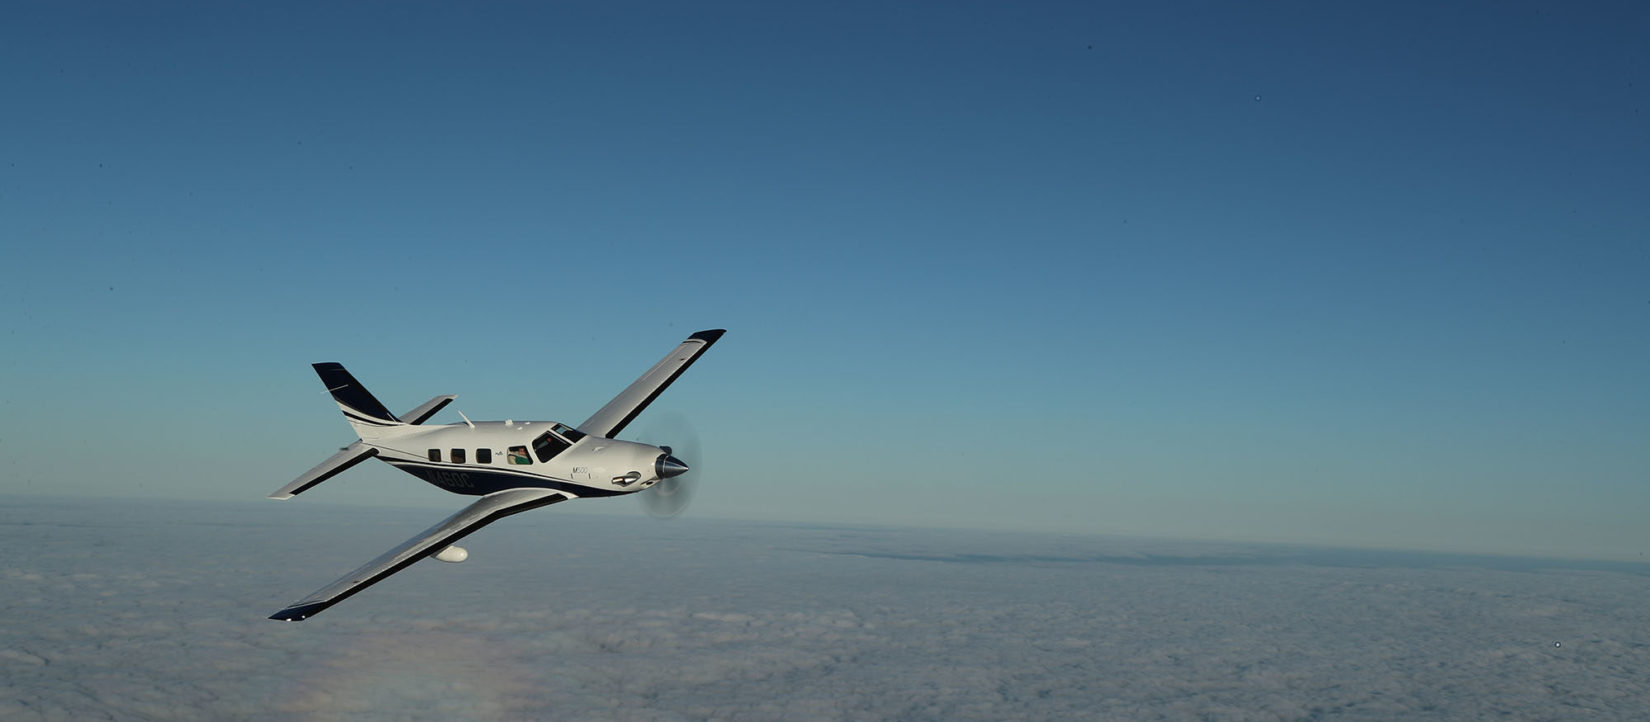 Piper Aircraft fleet flying in the sky